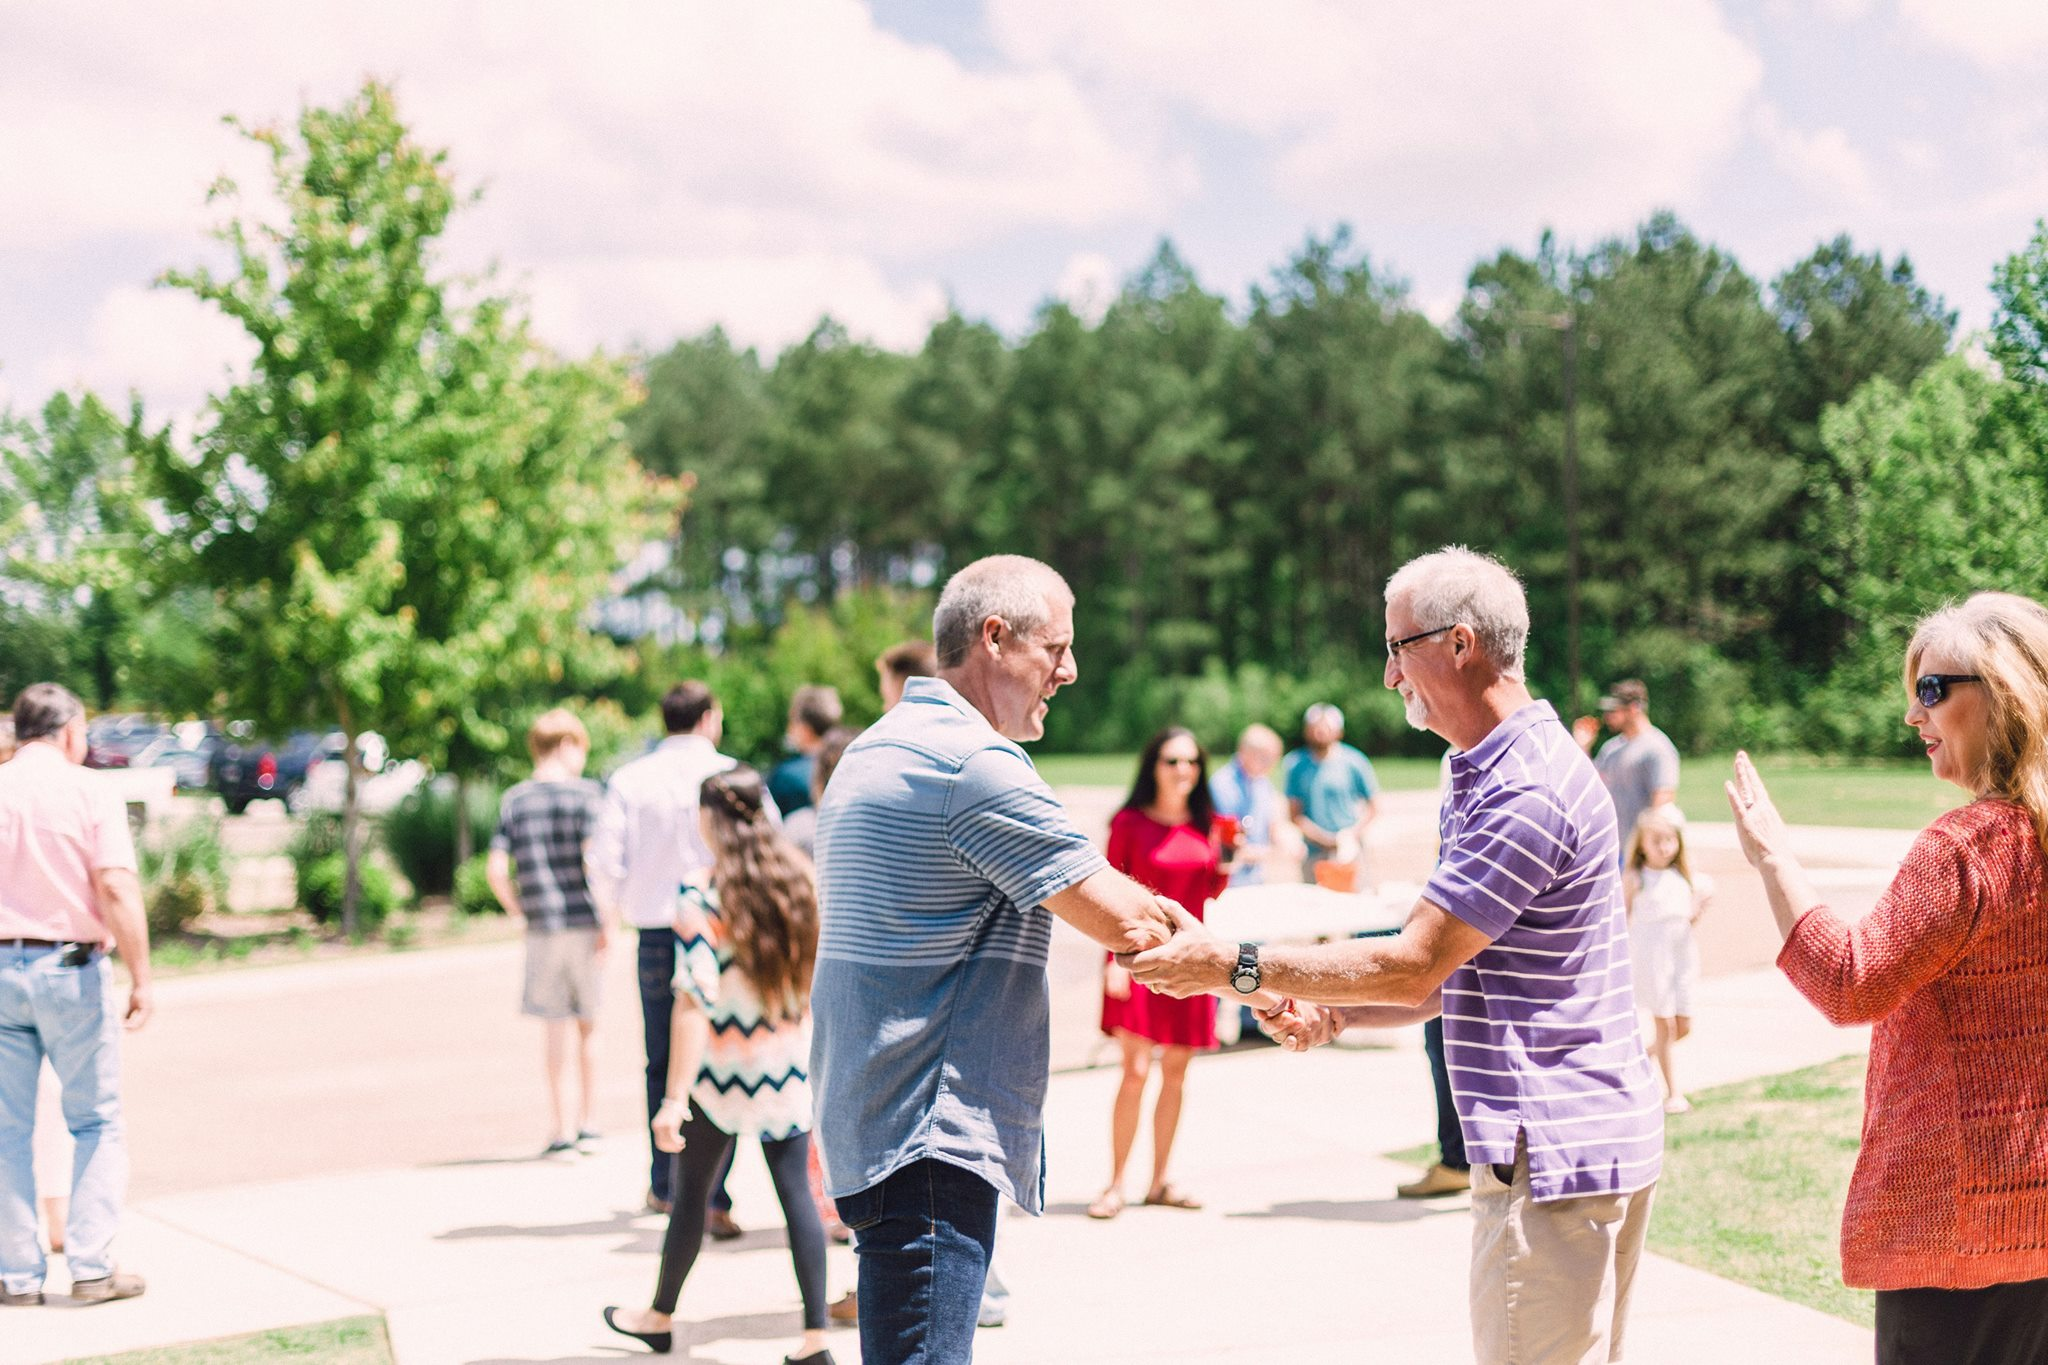 Guest Services - Our Guests Services volunteers have the privilege of serving every person who attends our church. Our goal in every interaction is to exceed expectations of hospitality and to ensure a remarkable experience.Read More